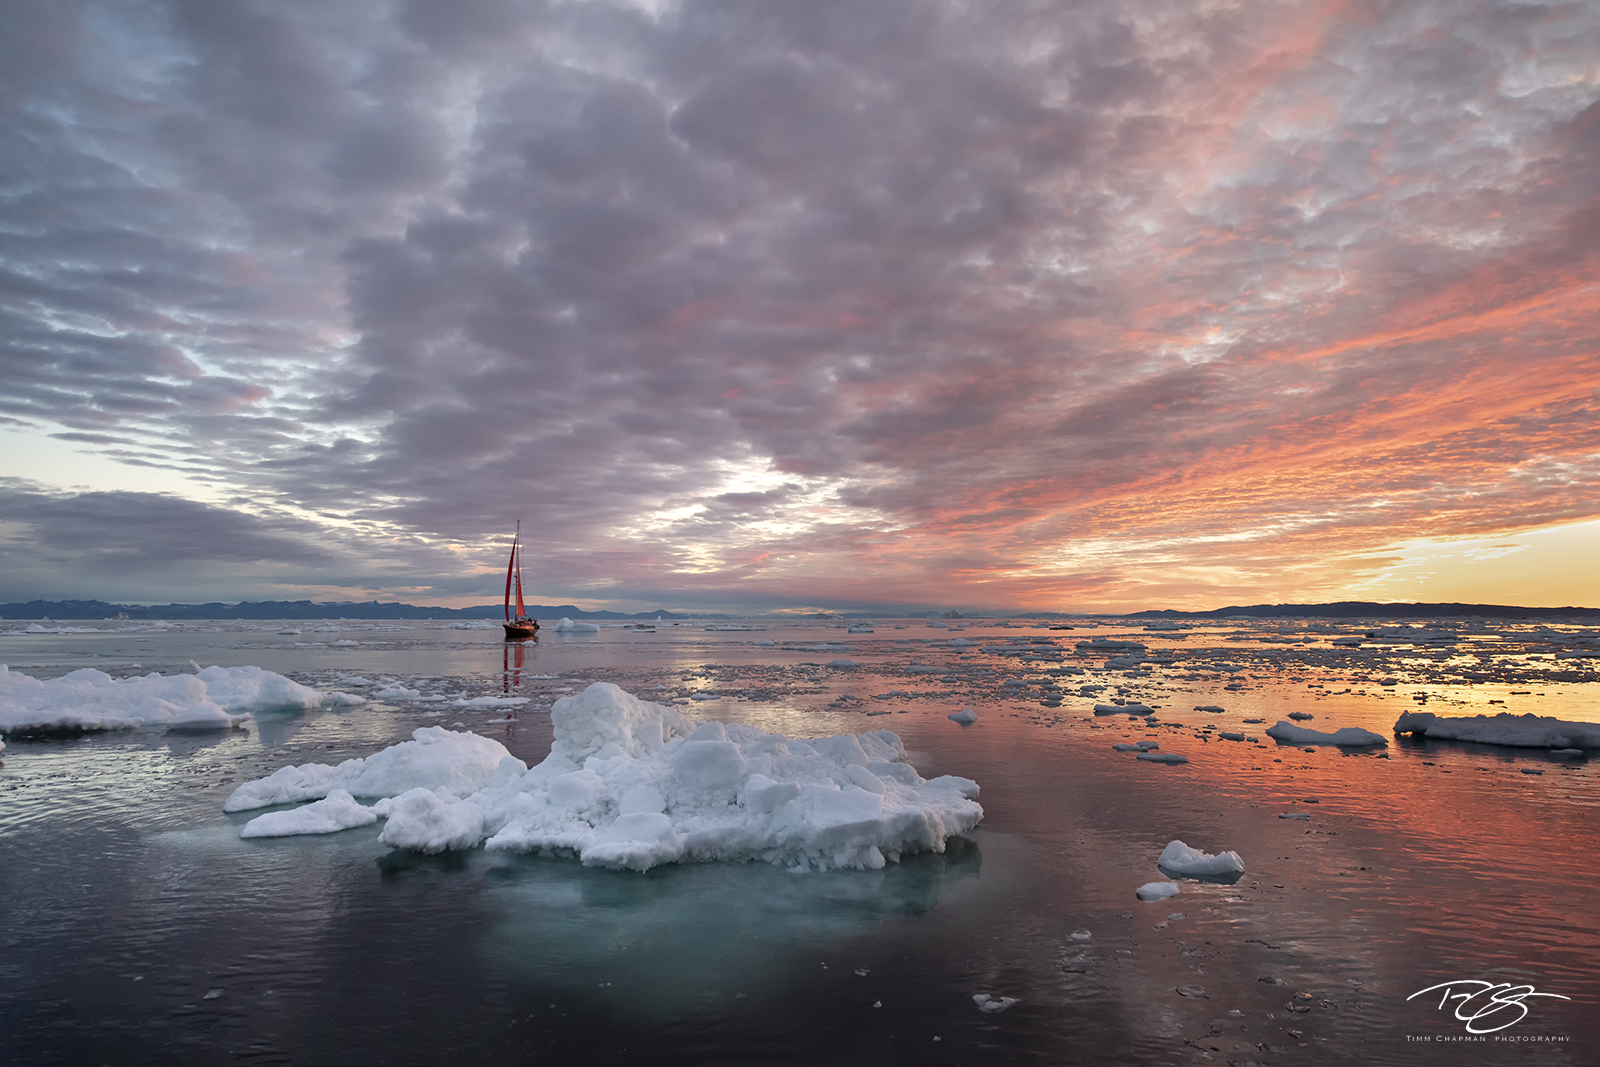 ice; iceberg; disko bay; dusk; twilight; predawn; sunrise; icefjord; ship; sailboat; sailing; schooner; sails; red sails;  scarlet sails, photo